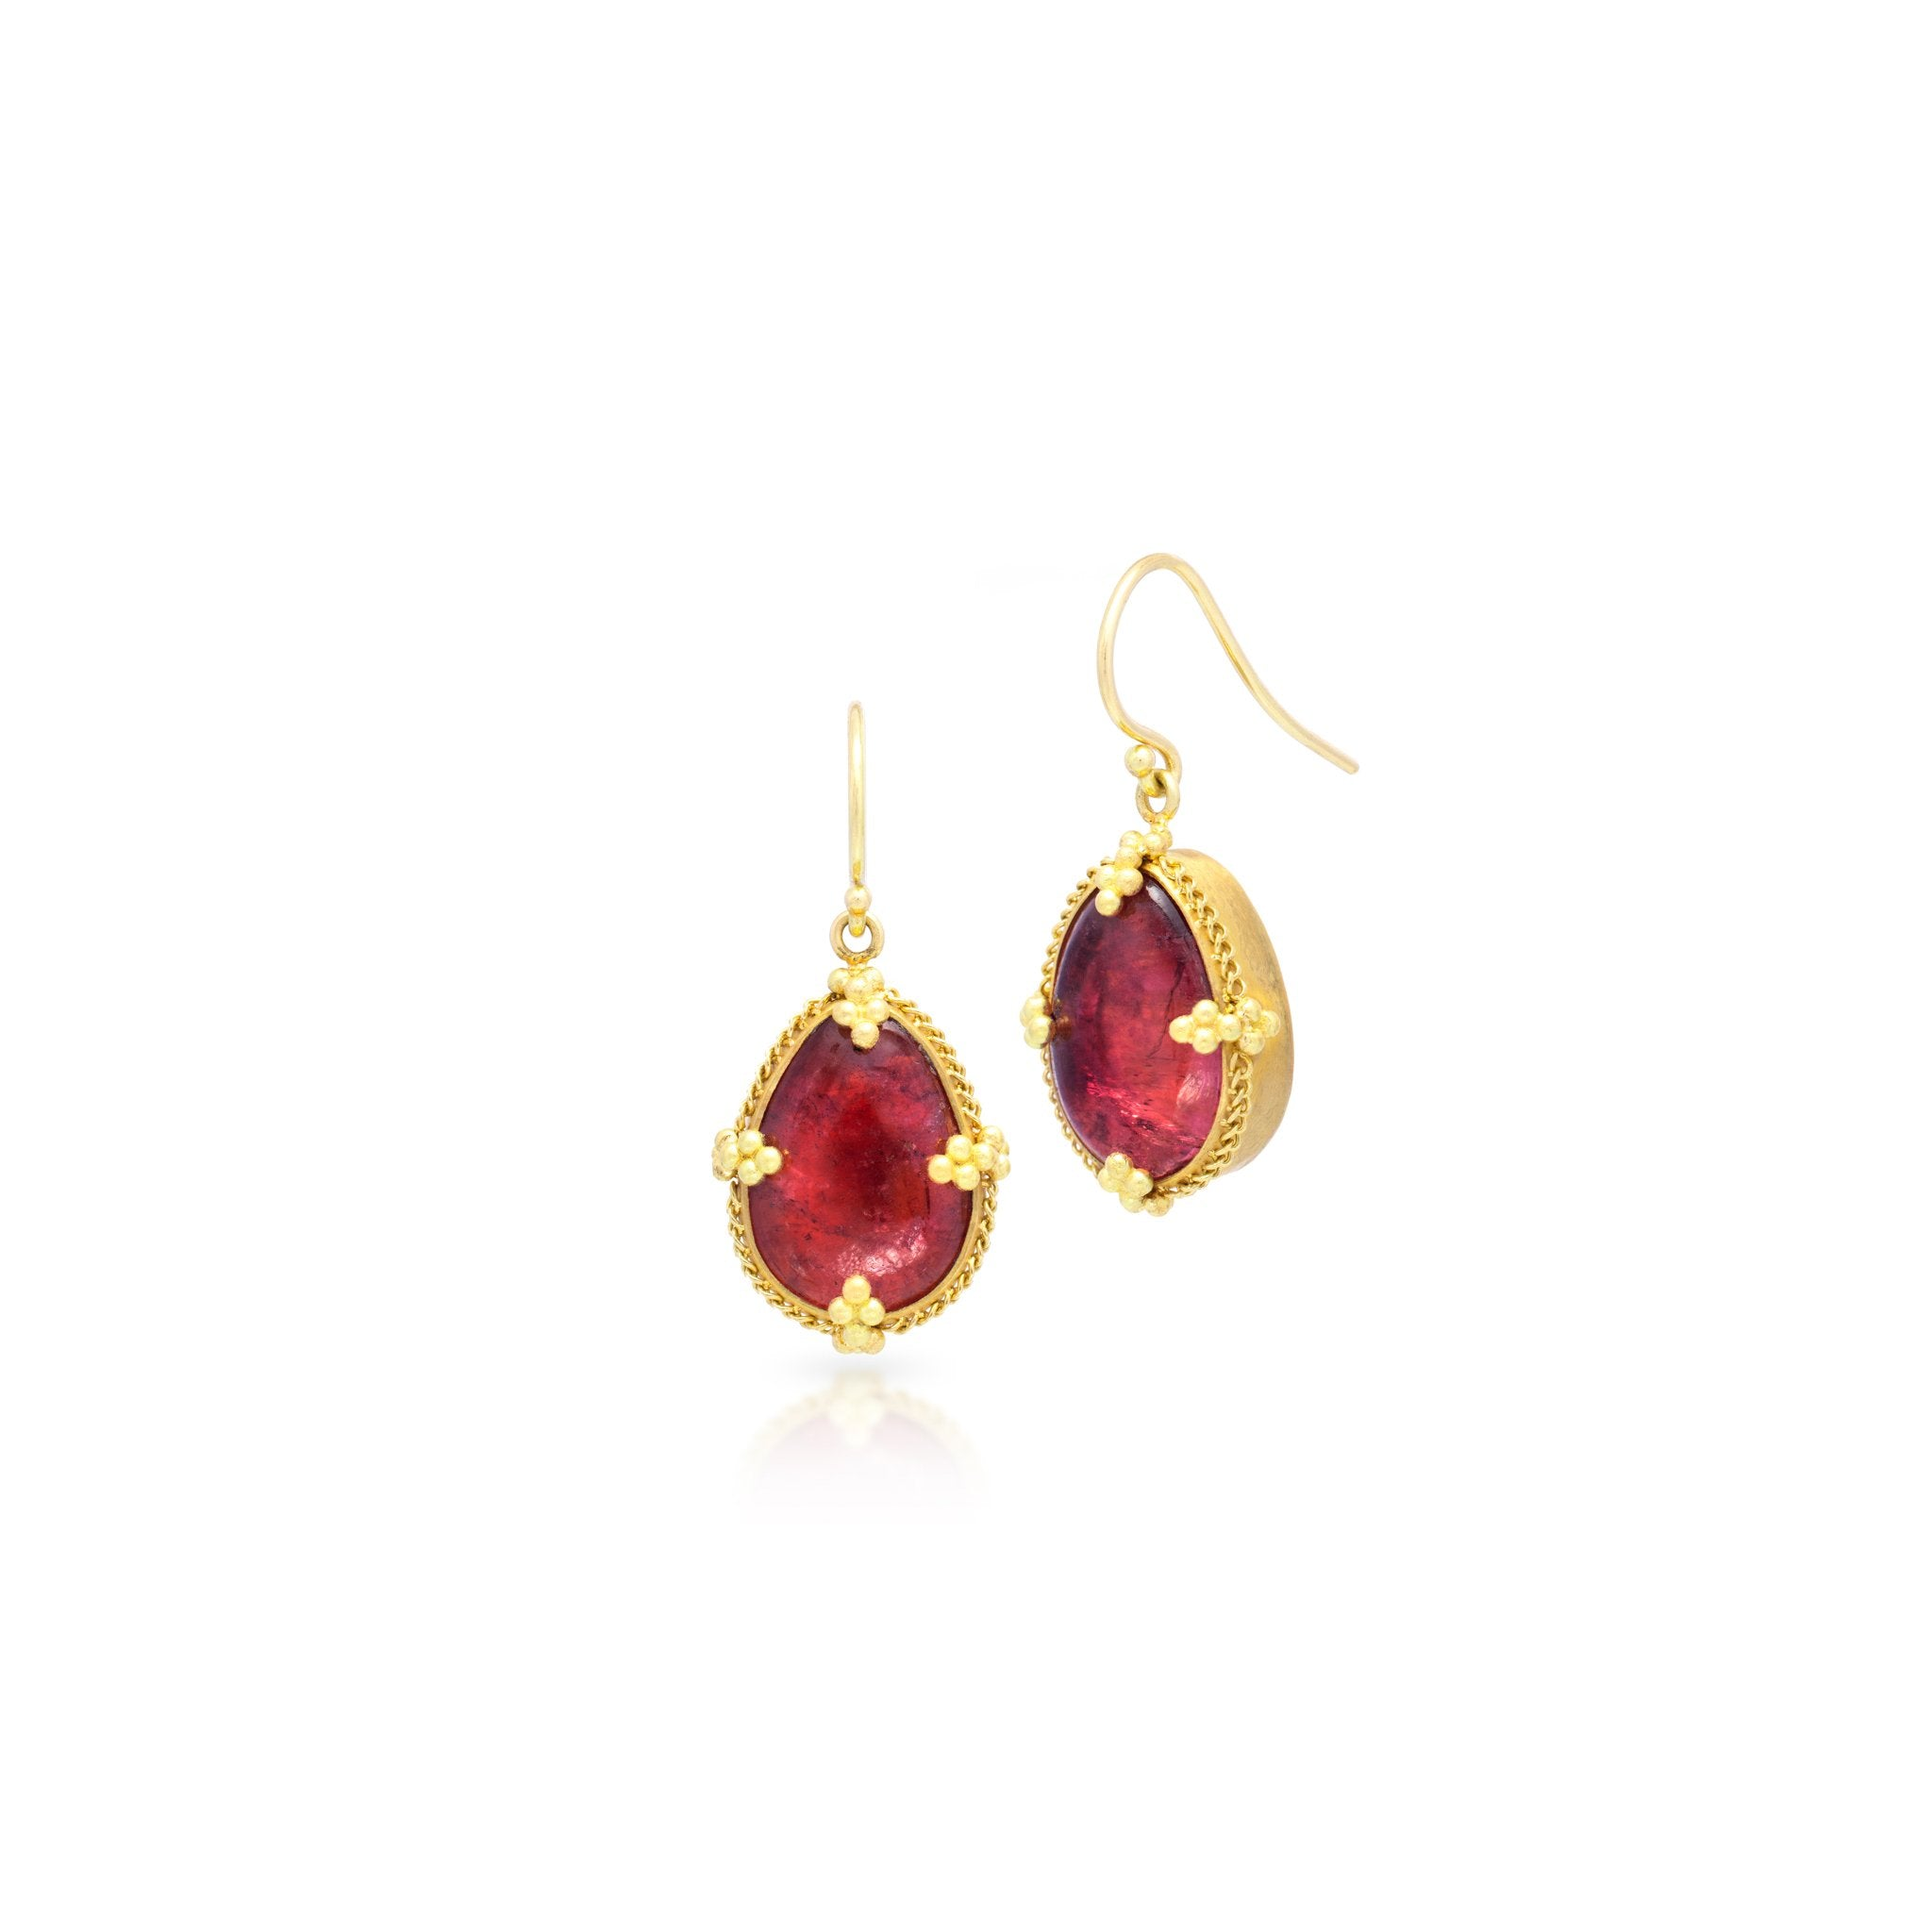 Amali-Tourmaline Earrings